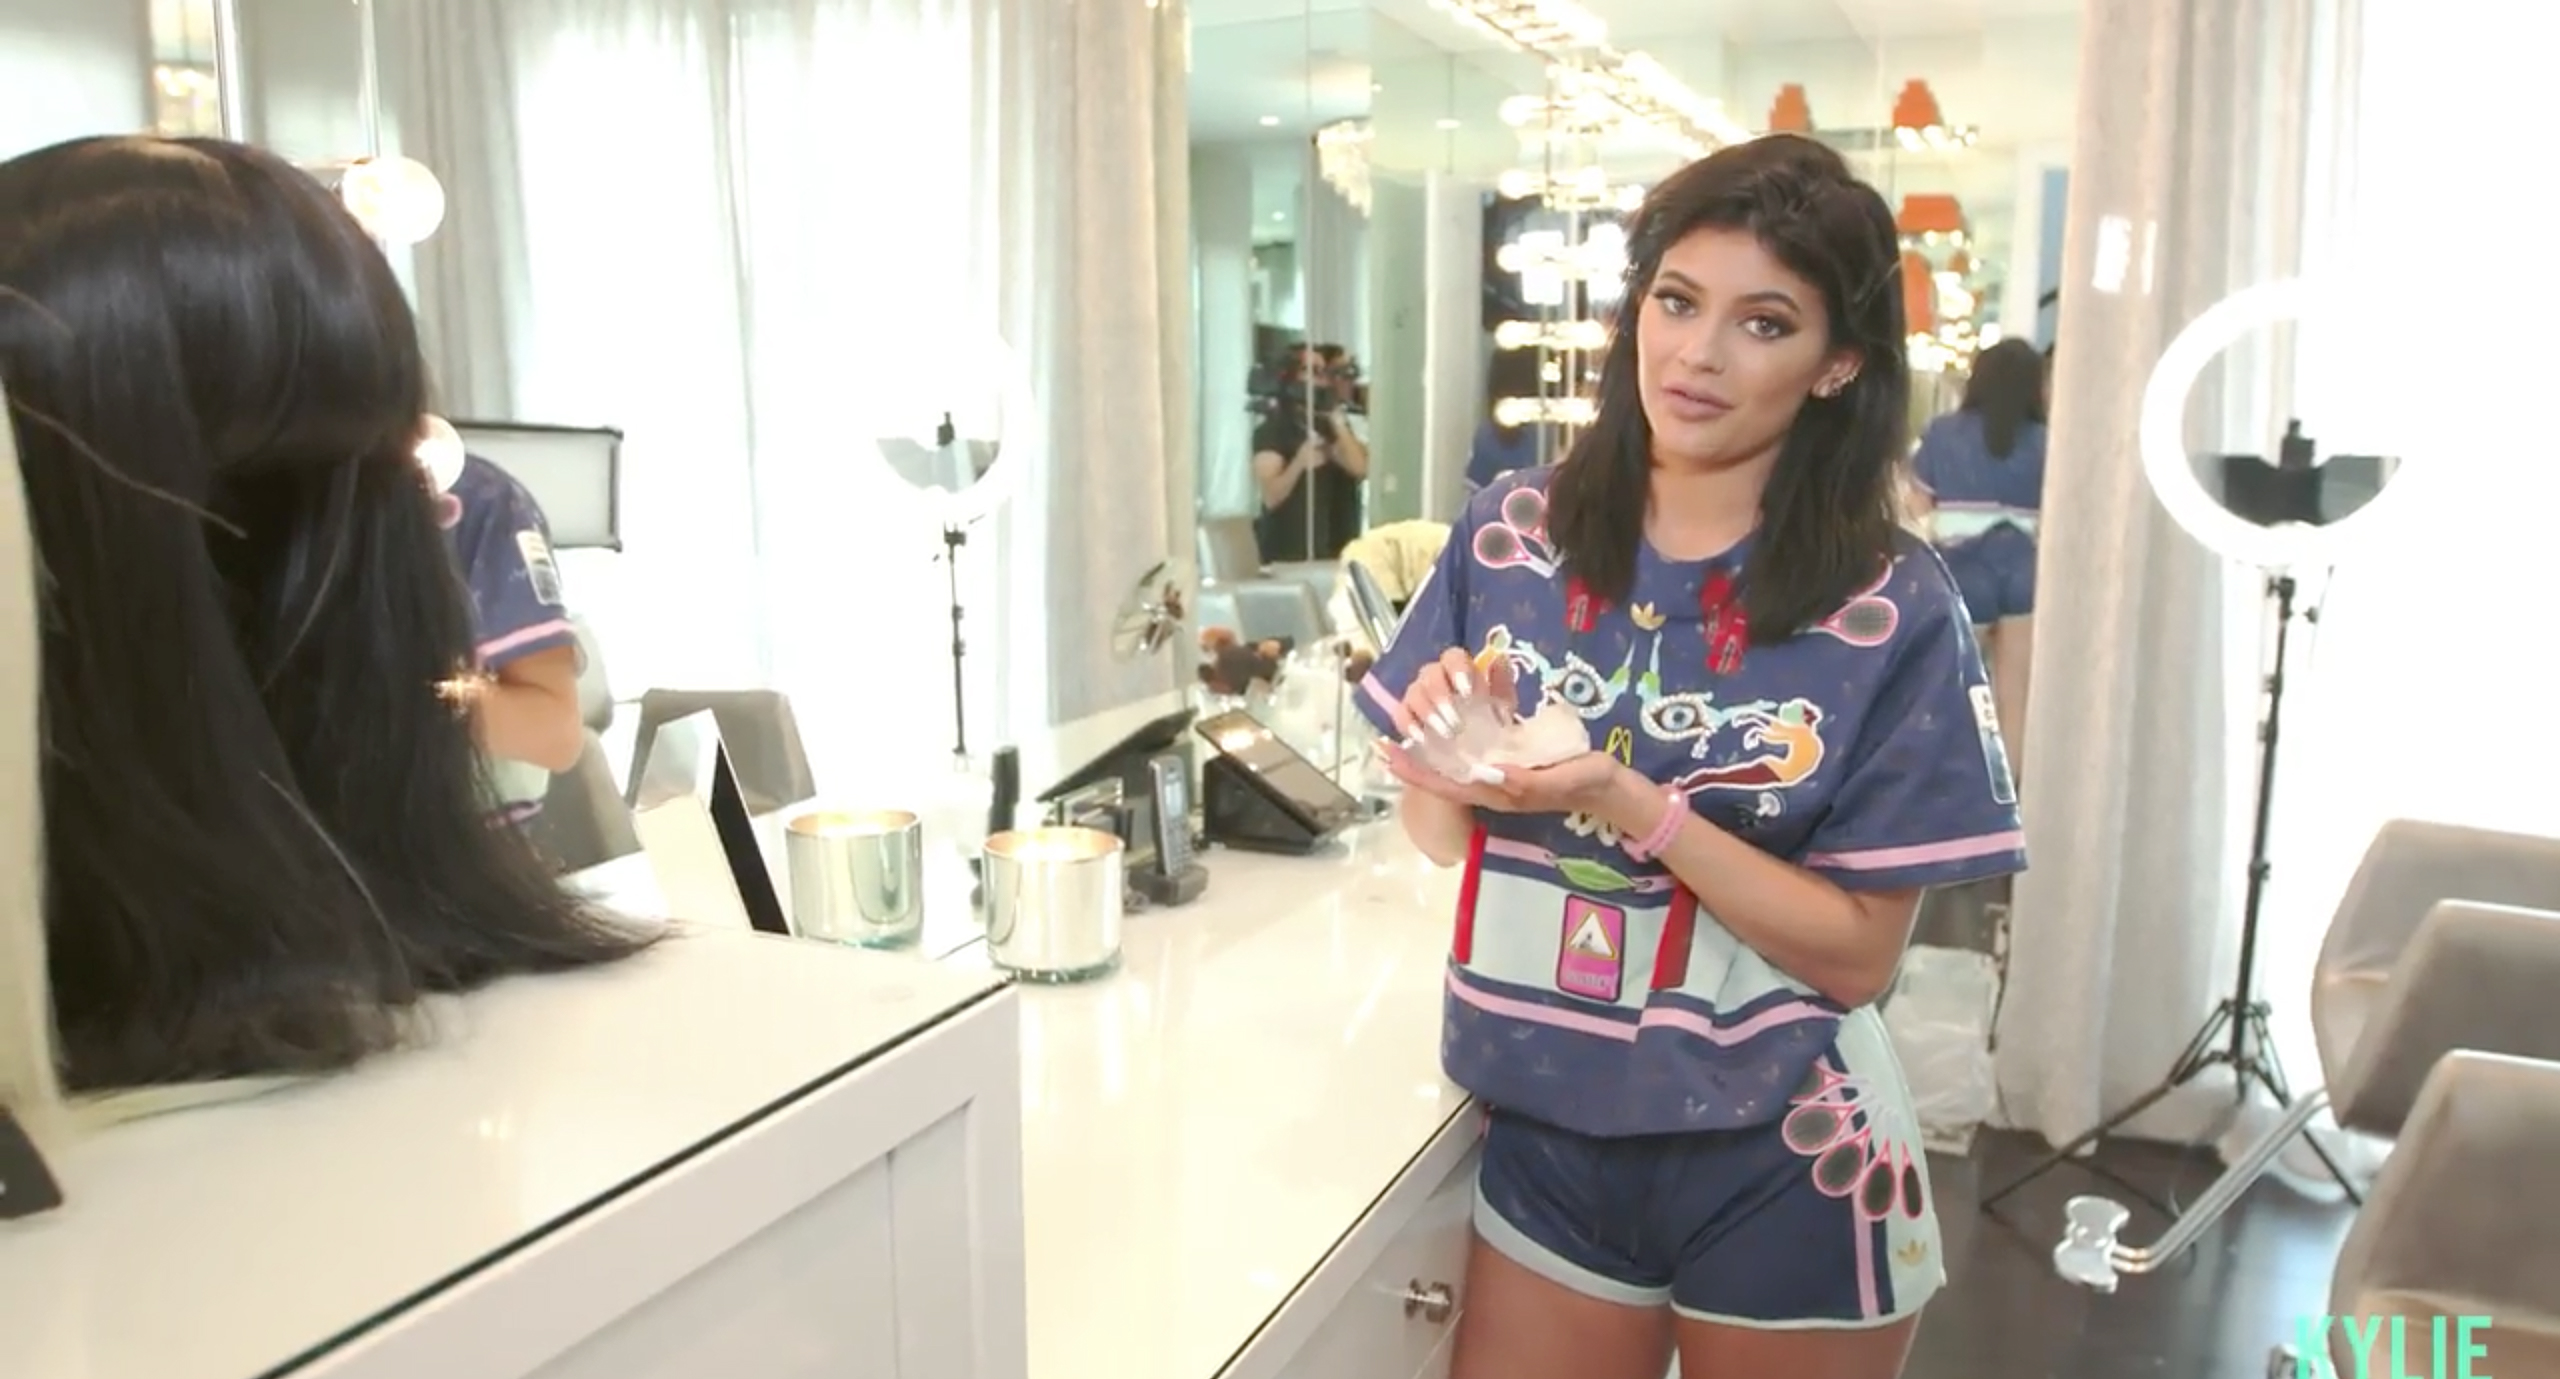 5 of the kylie est reveals from kylie jenner 39 s glam room tour for Kylie jenner room tour